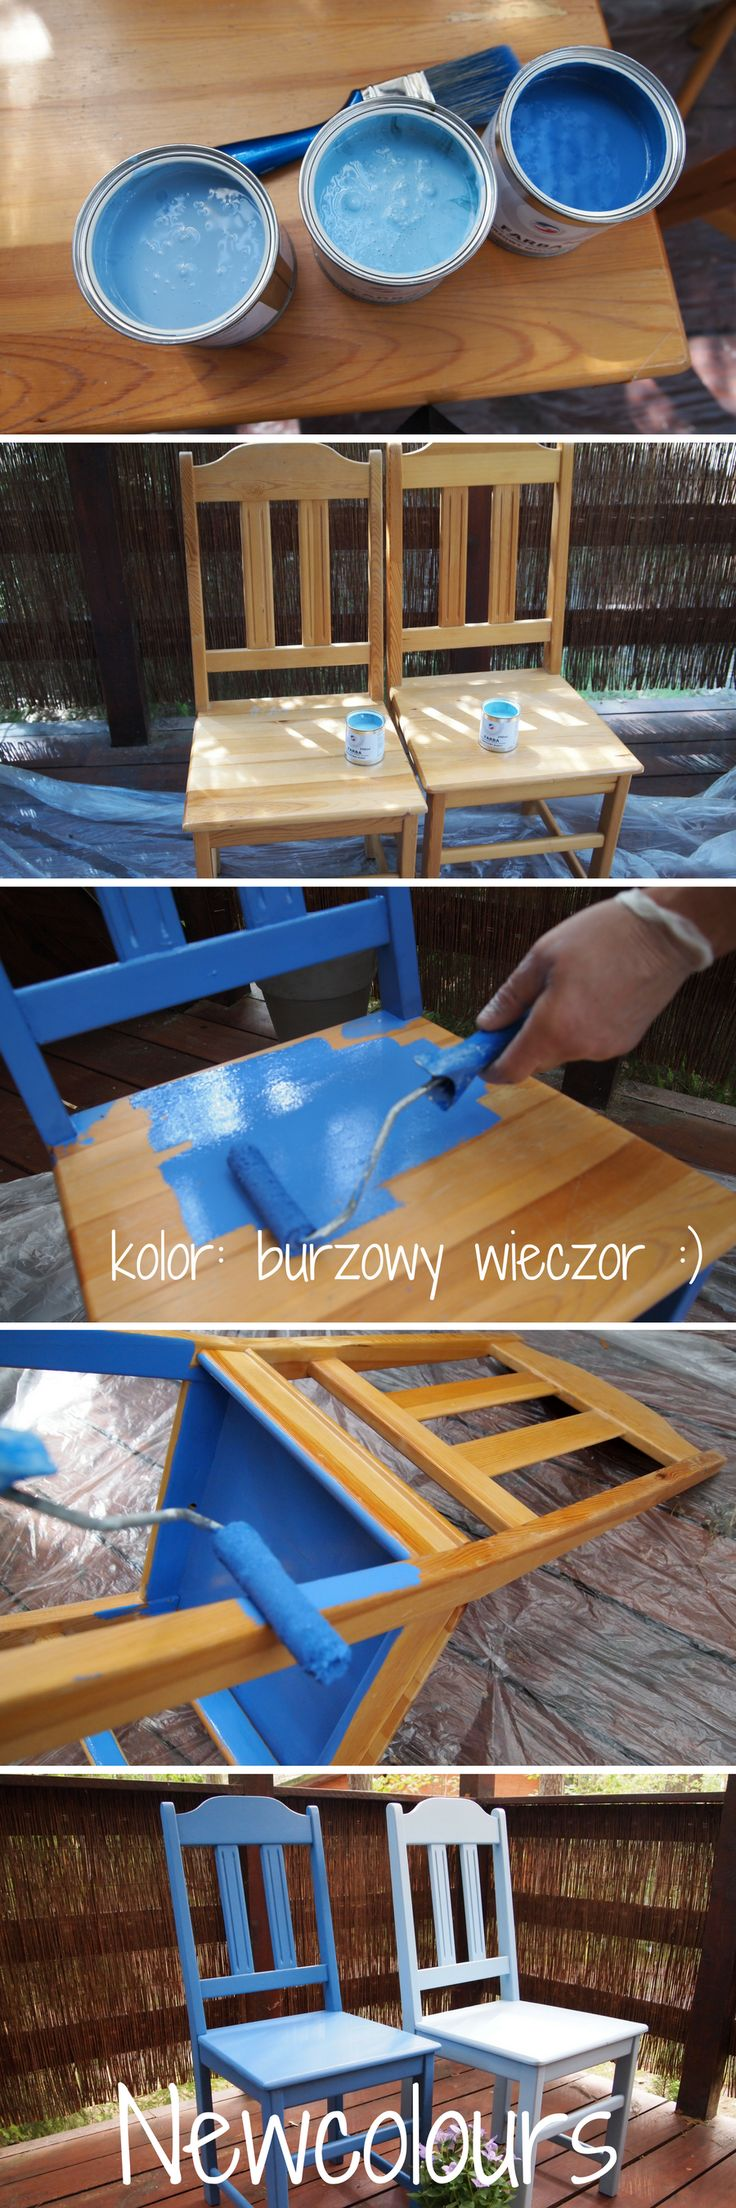 Chairs are getting a second life thanks to DIY paints NEWCOLOUR :) Nowe życie krzeseł dzięki farbom DIY NEWCOLOURS :)